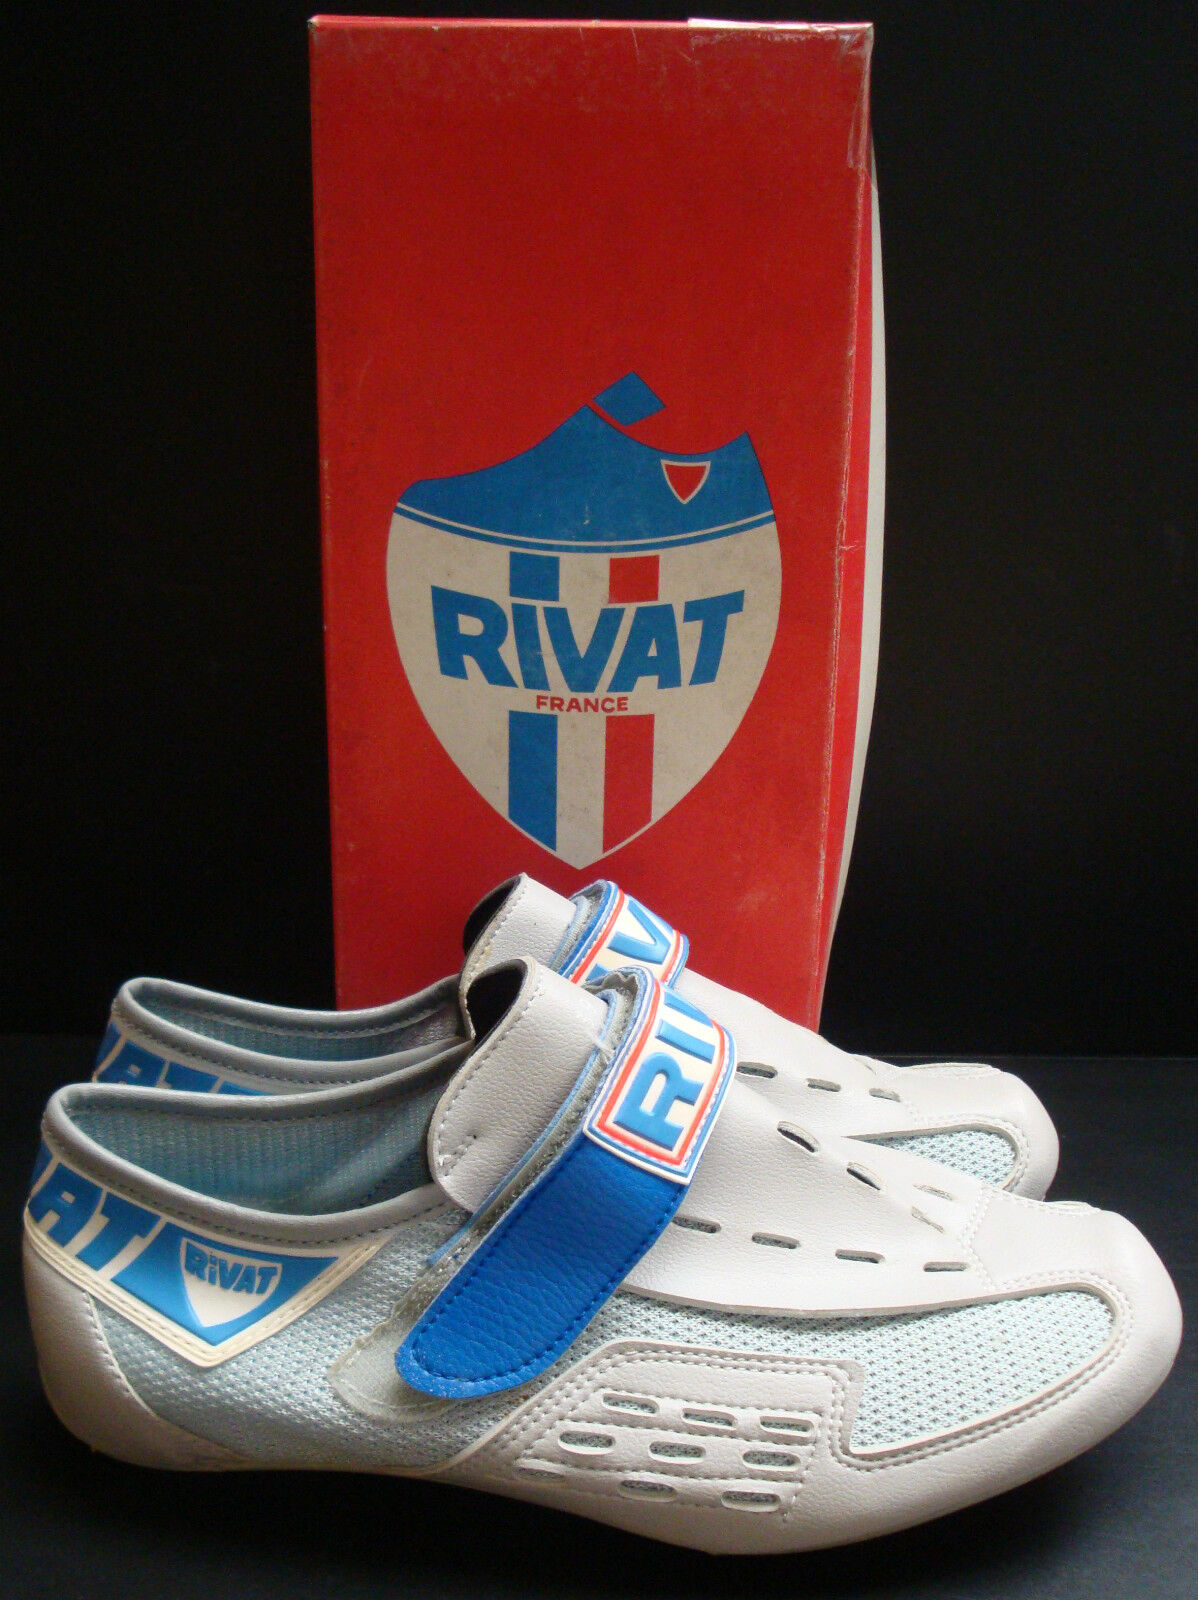 NIB  RIVAT SHOES SIZE 39 VINTAGE MADE IN FRANCE 6